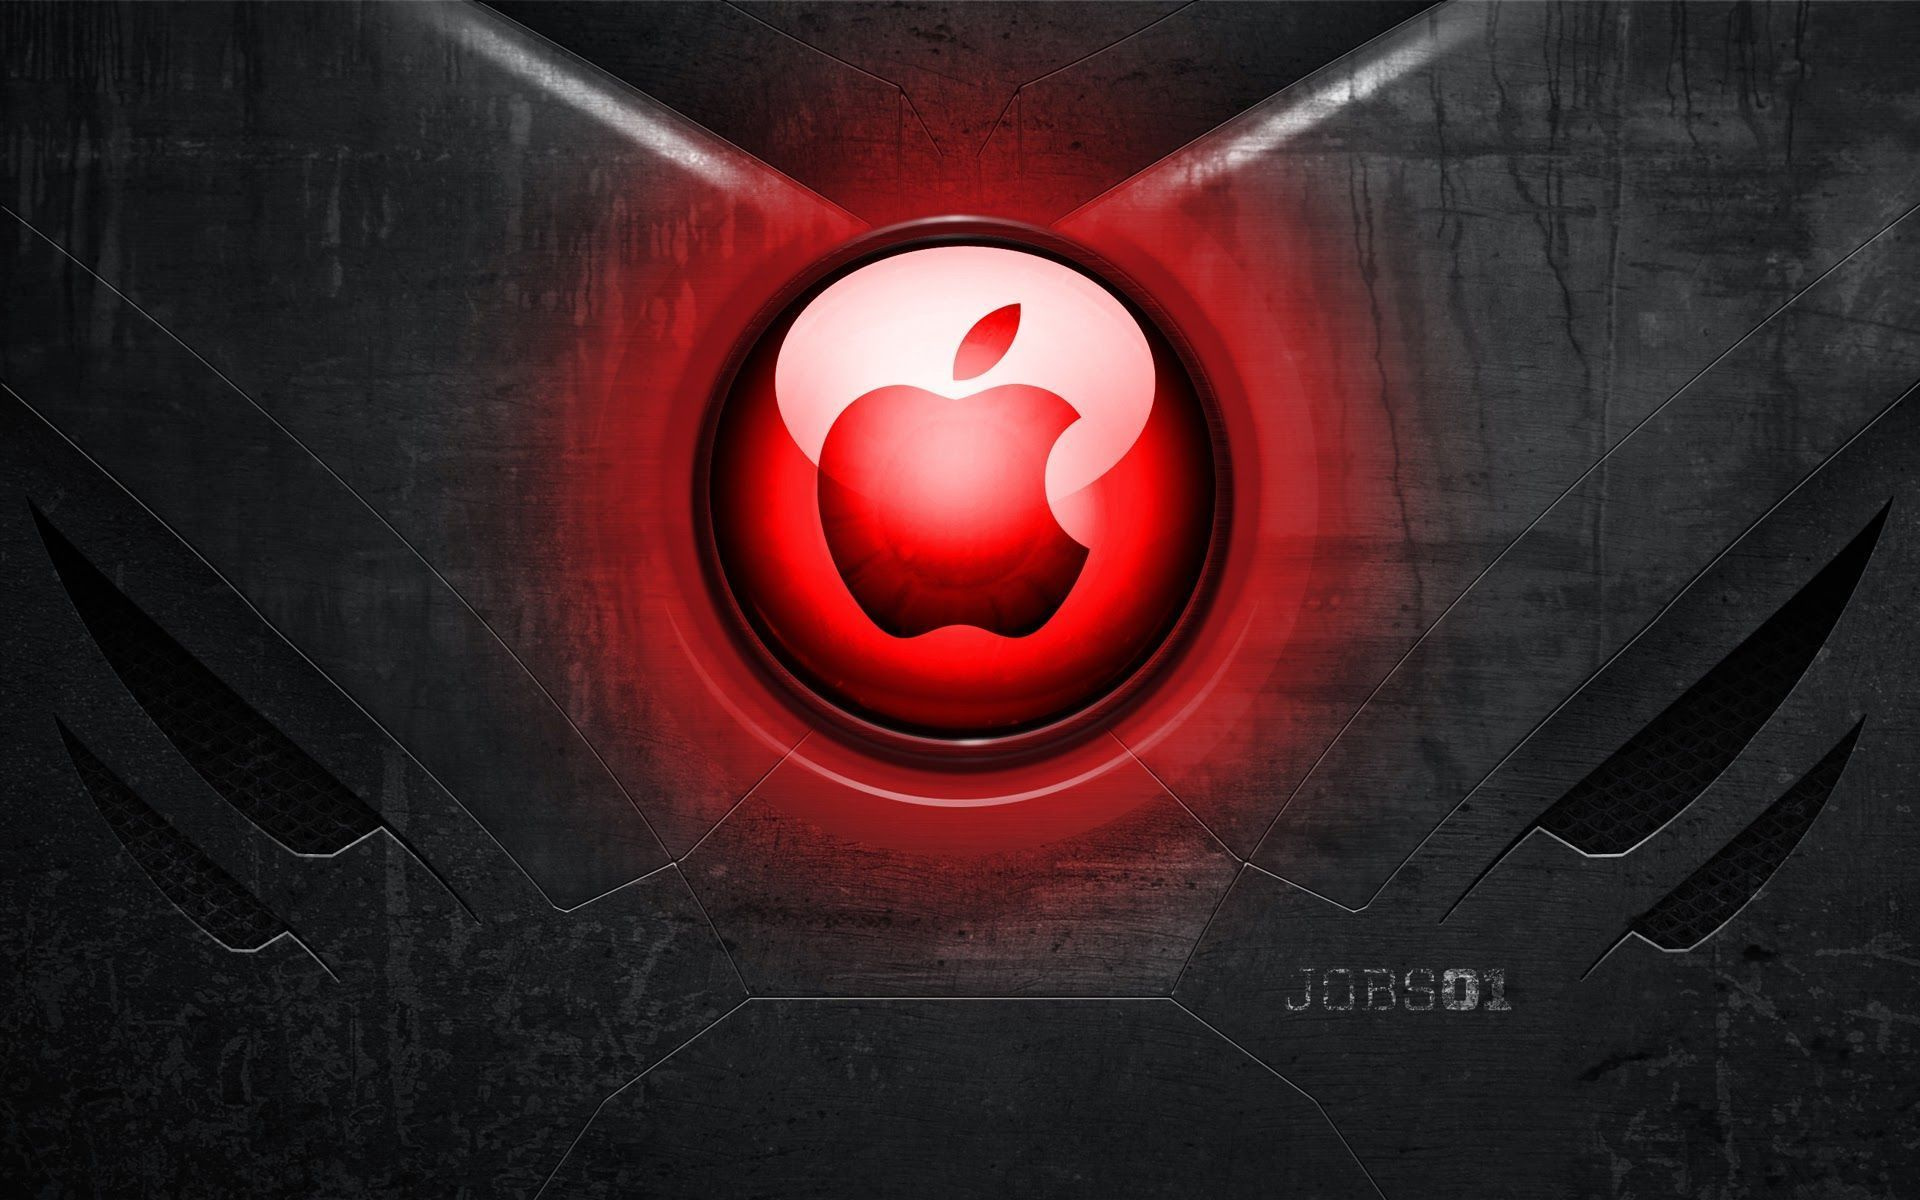 cool apple logos hd. best images about iamironman on pinterest · apple brandapple logohd cool logos hd